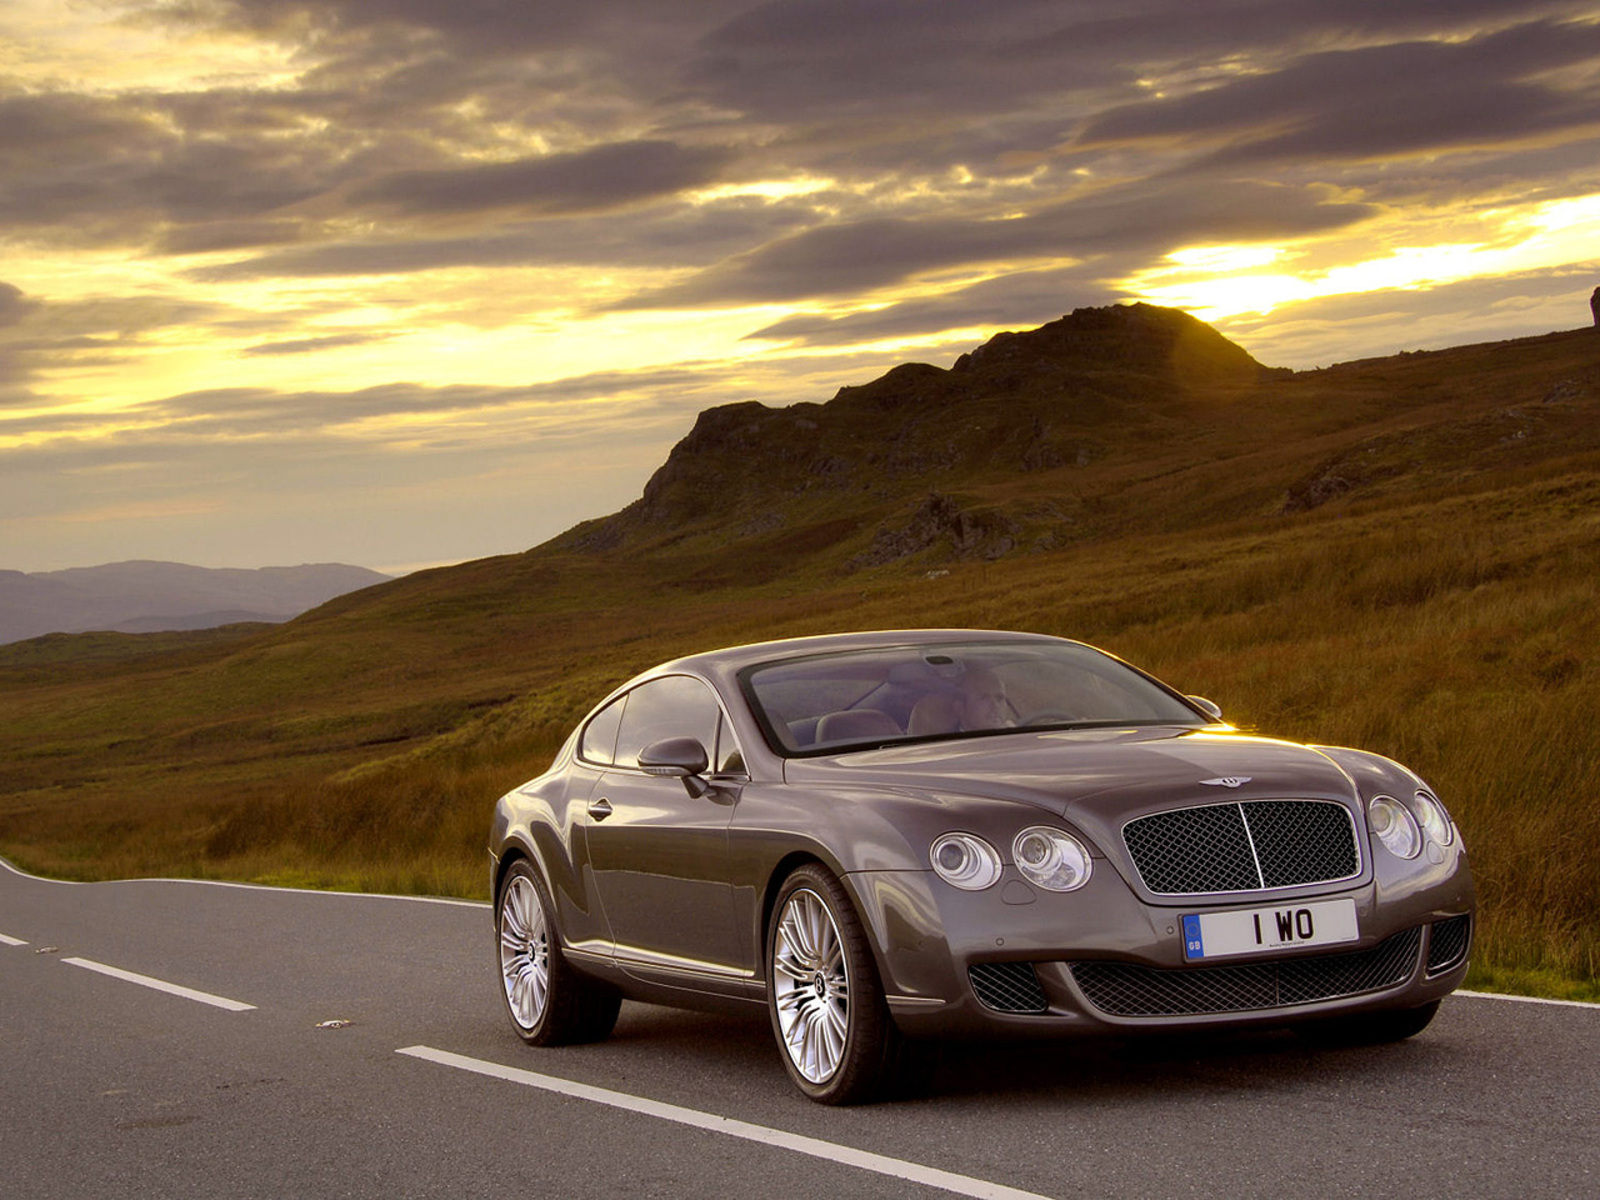 2012 Bentley Continental GT Speed Front Angle (Photo 3 of 6)